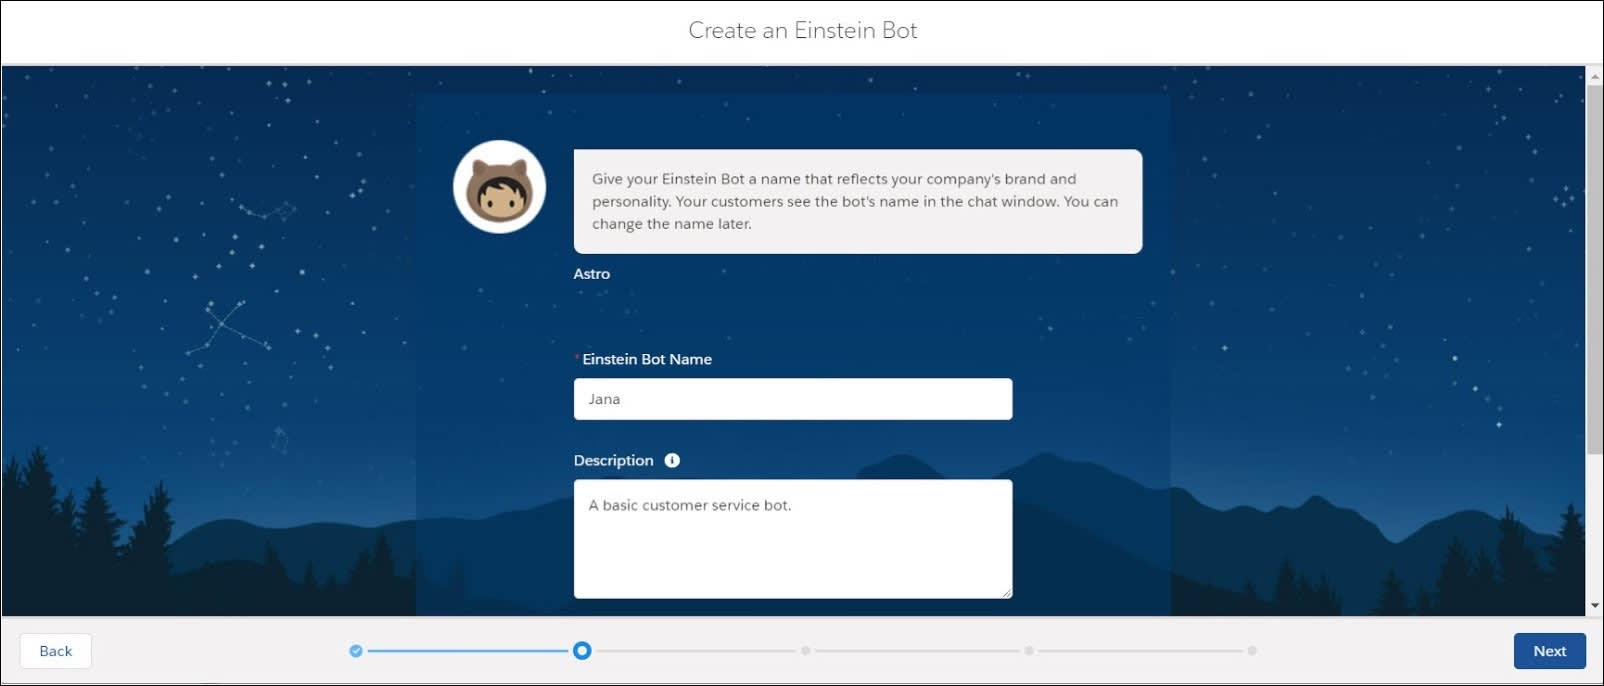 The second page of the Create an Einstein Bot setup wizard.